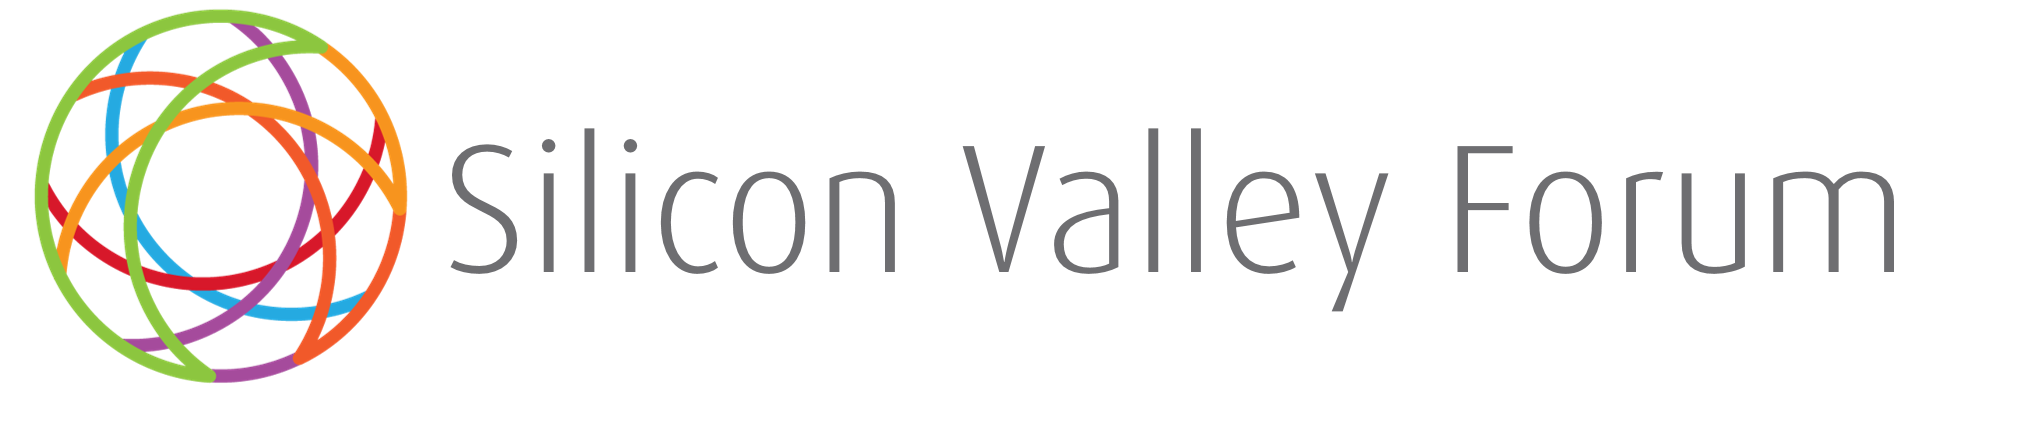 Silicon-Valley-Forum-Logo-website-version.png